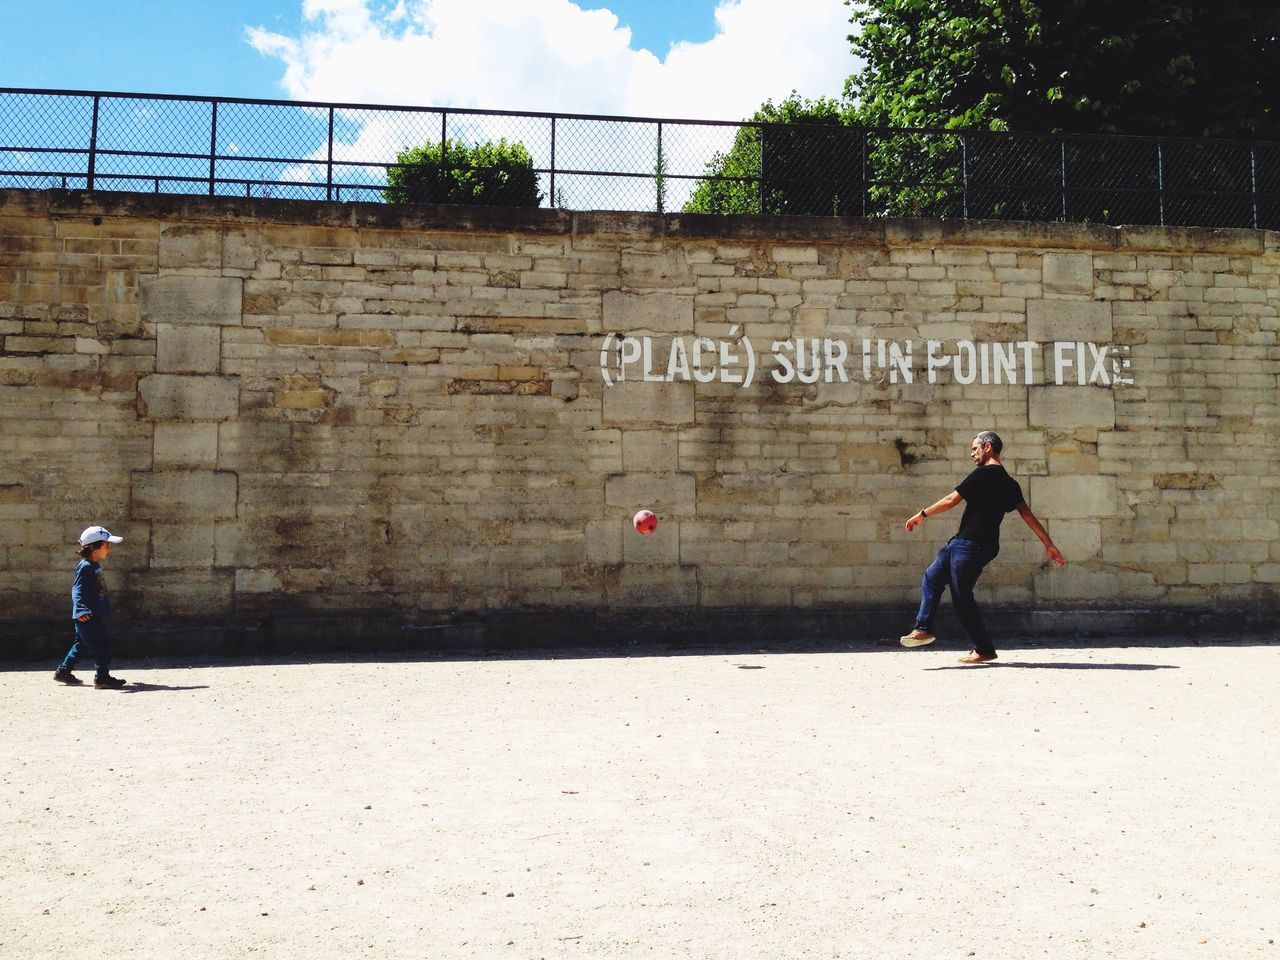 Enjoying Life Football Father & Son Kids Shadow Paris Check This Out Jardin Des Tuileries